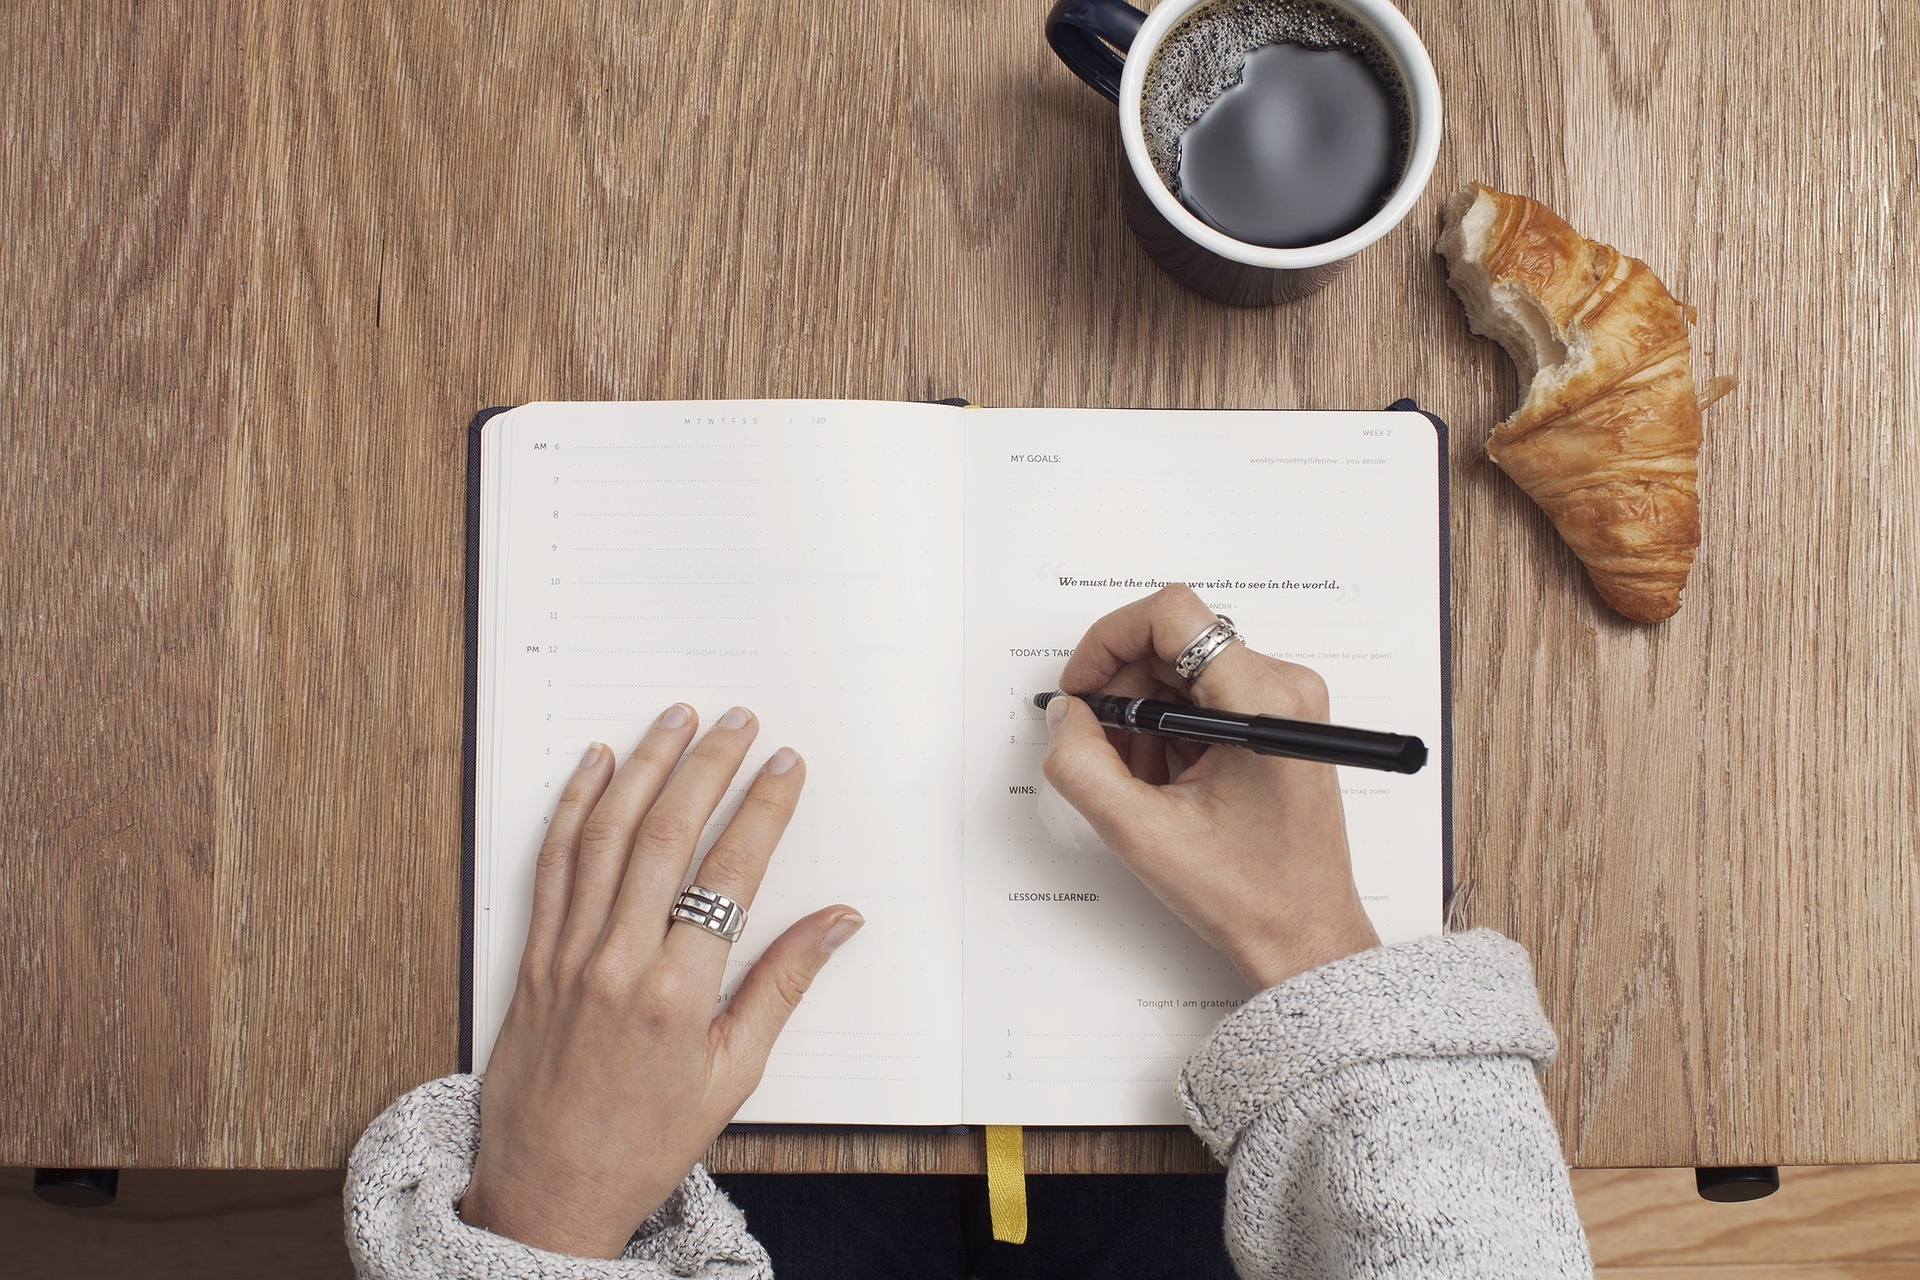 Image of hands writing and coffee